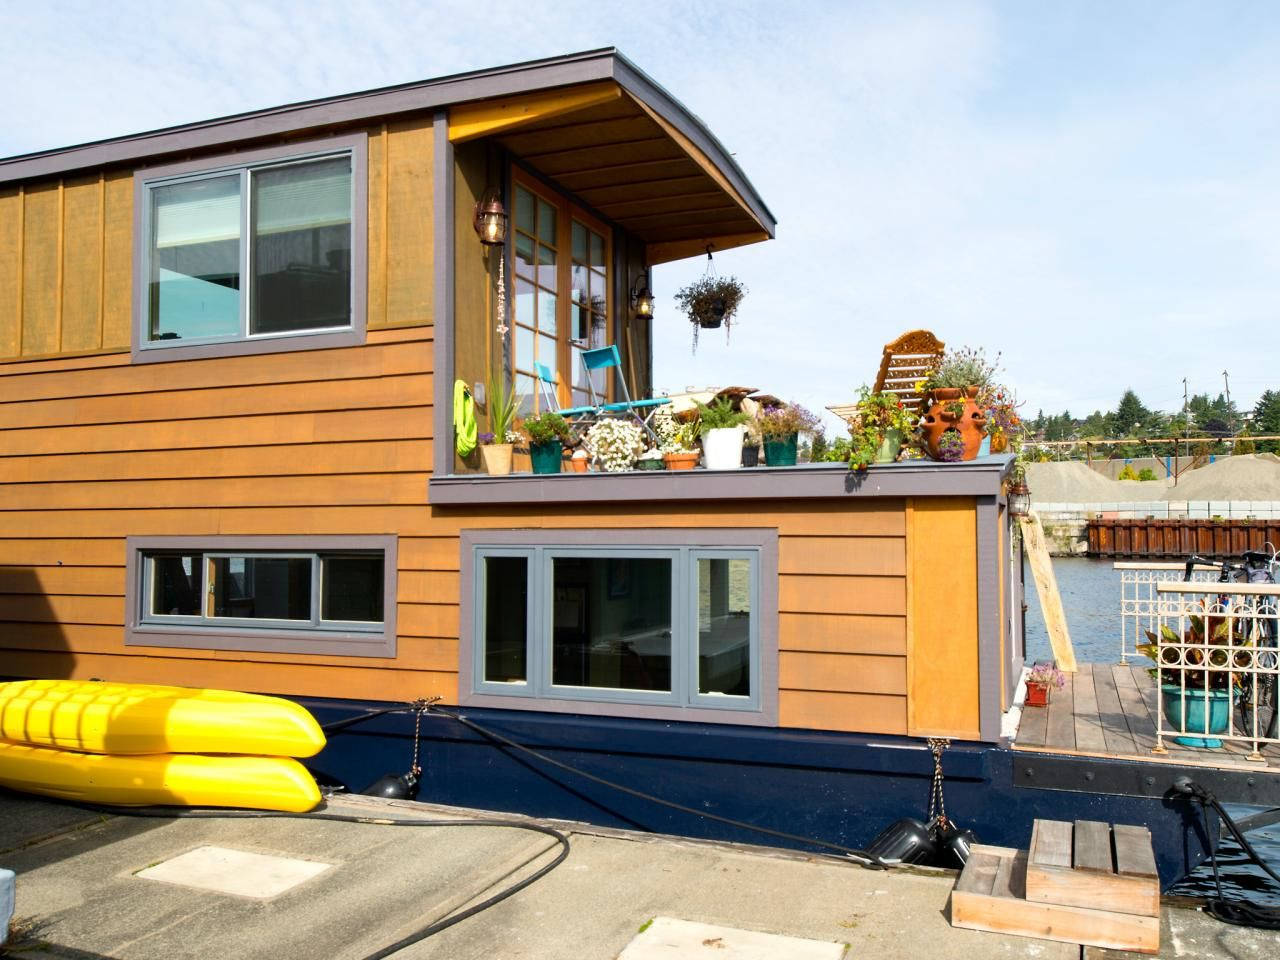 15 Stylish Houseboats For Sale And For Rent Houseboat